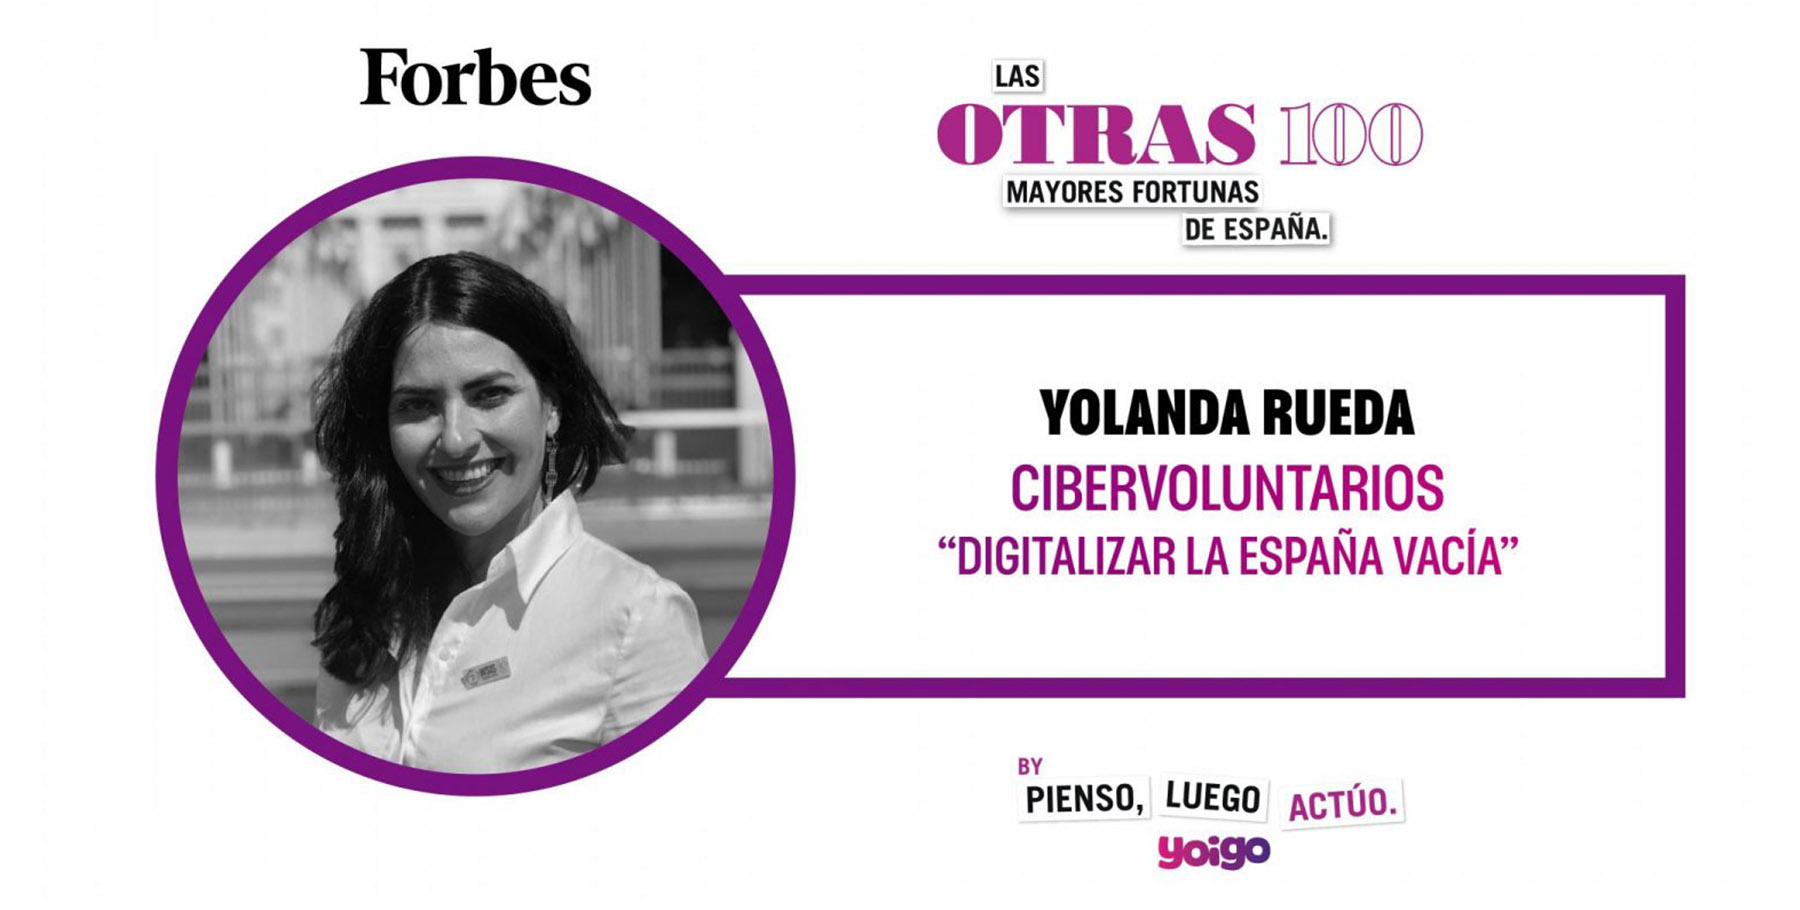 Forbes Spain chooses Fundación Cibervoluntarios as one of